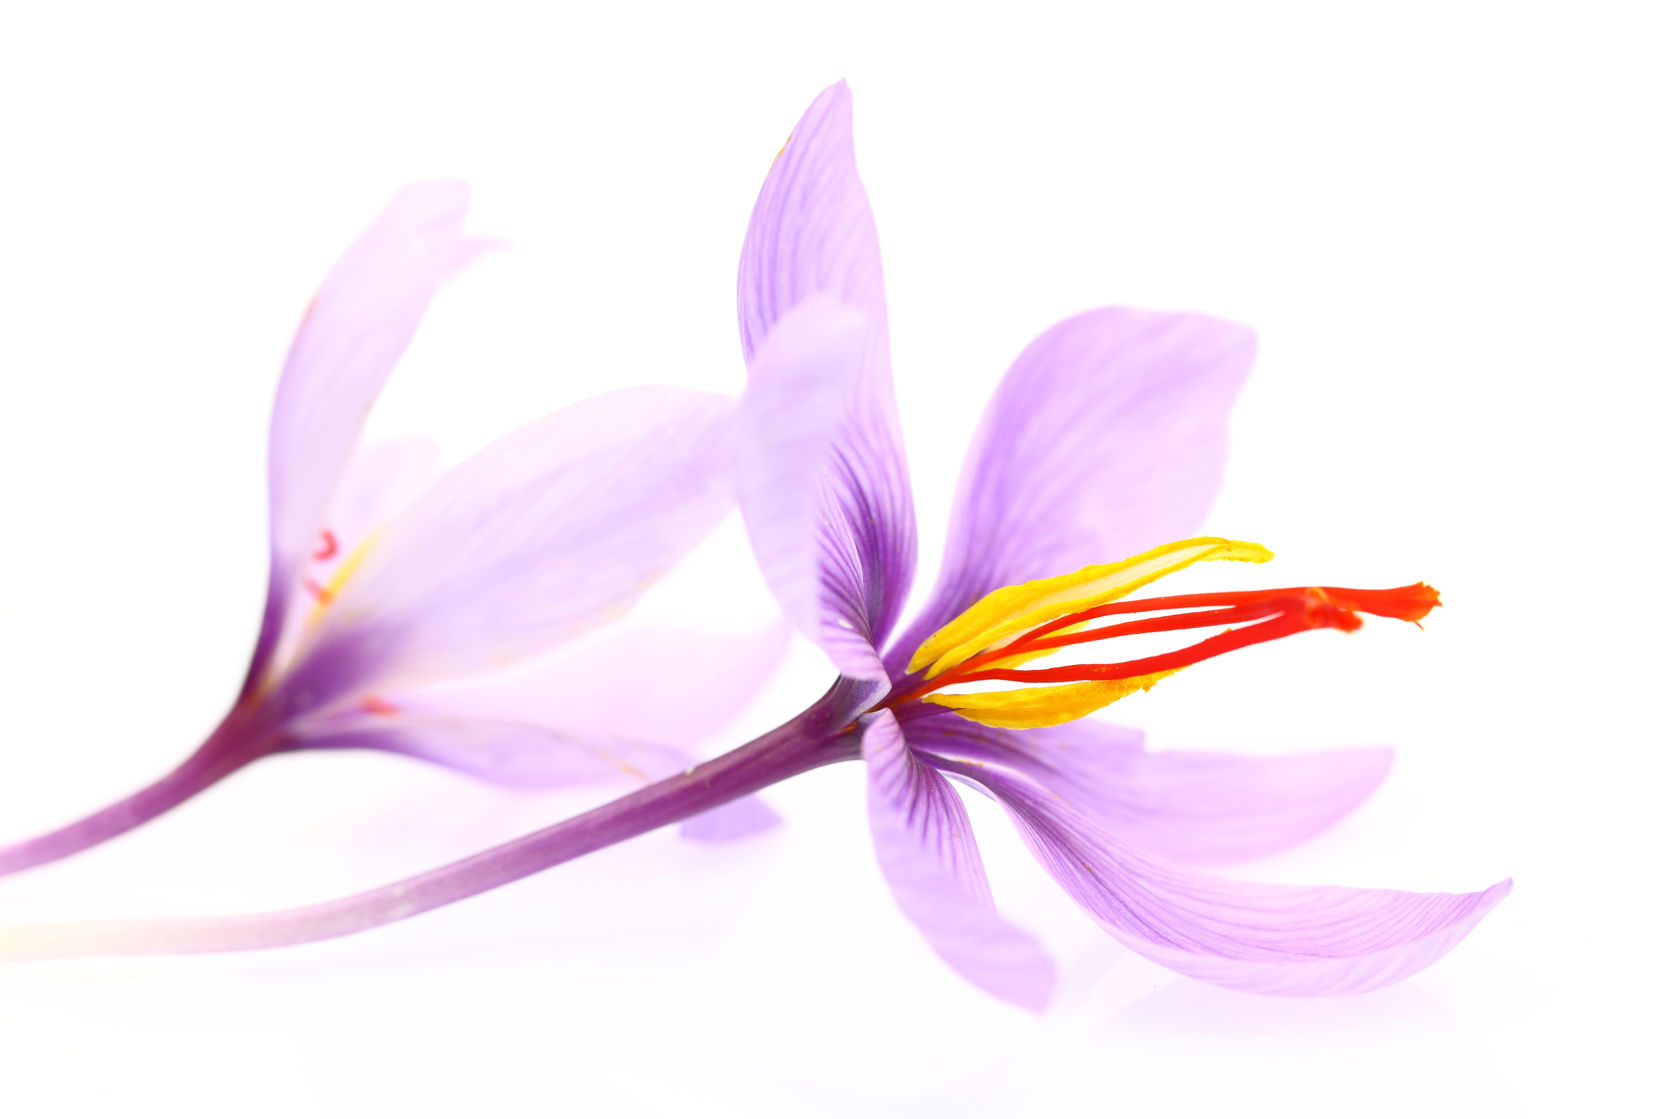 saffron is safe and effective for postpartum depression